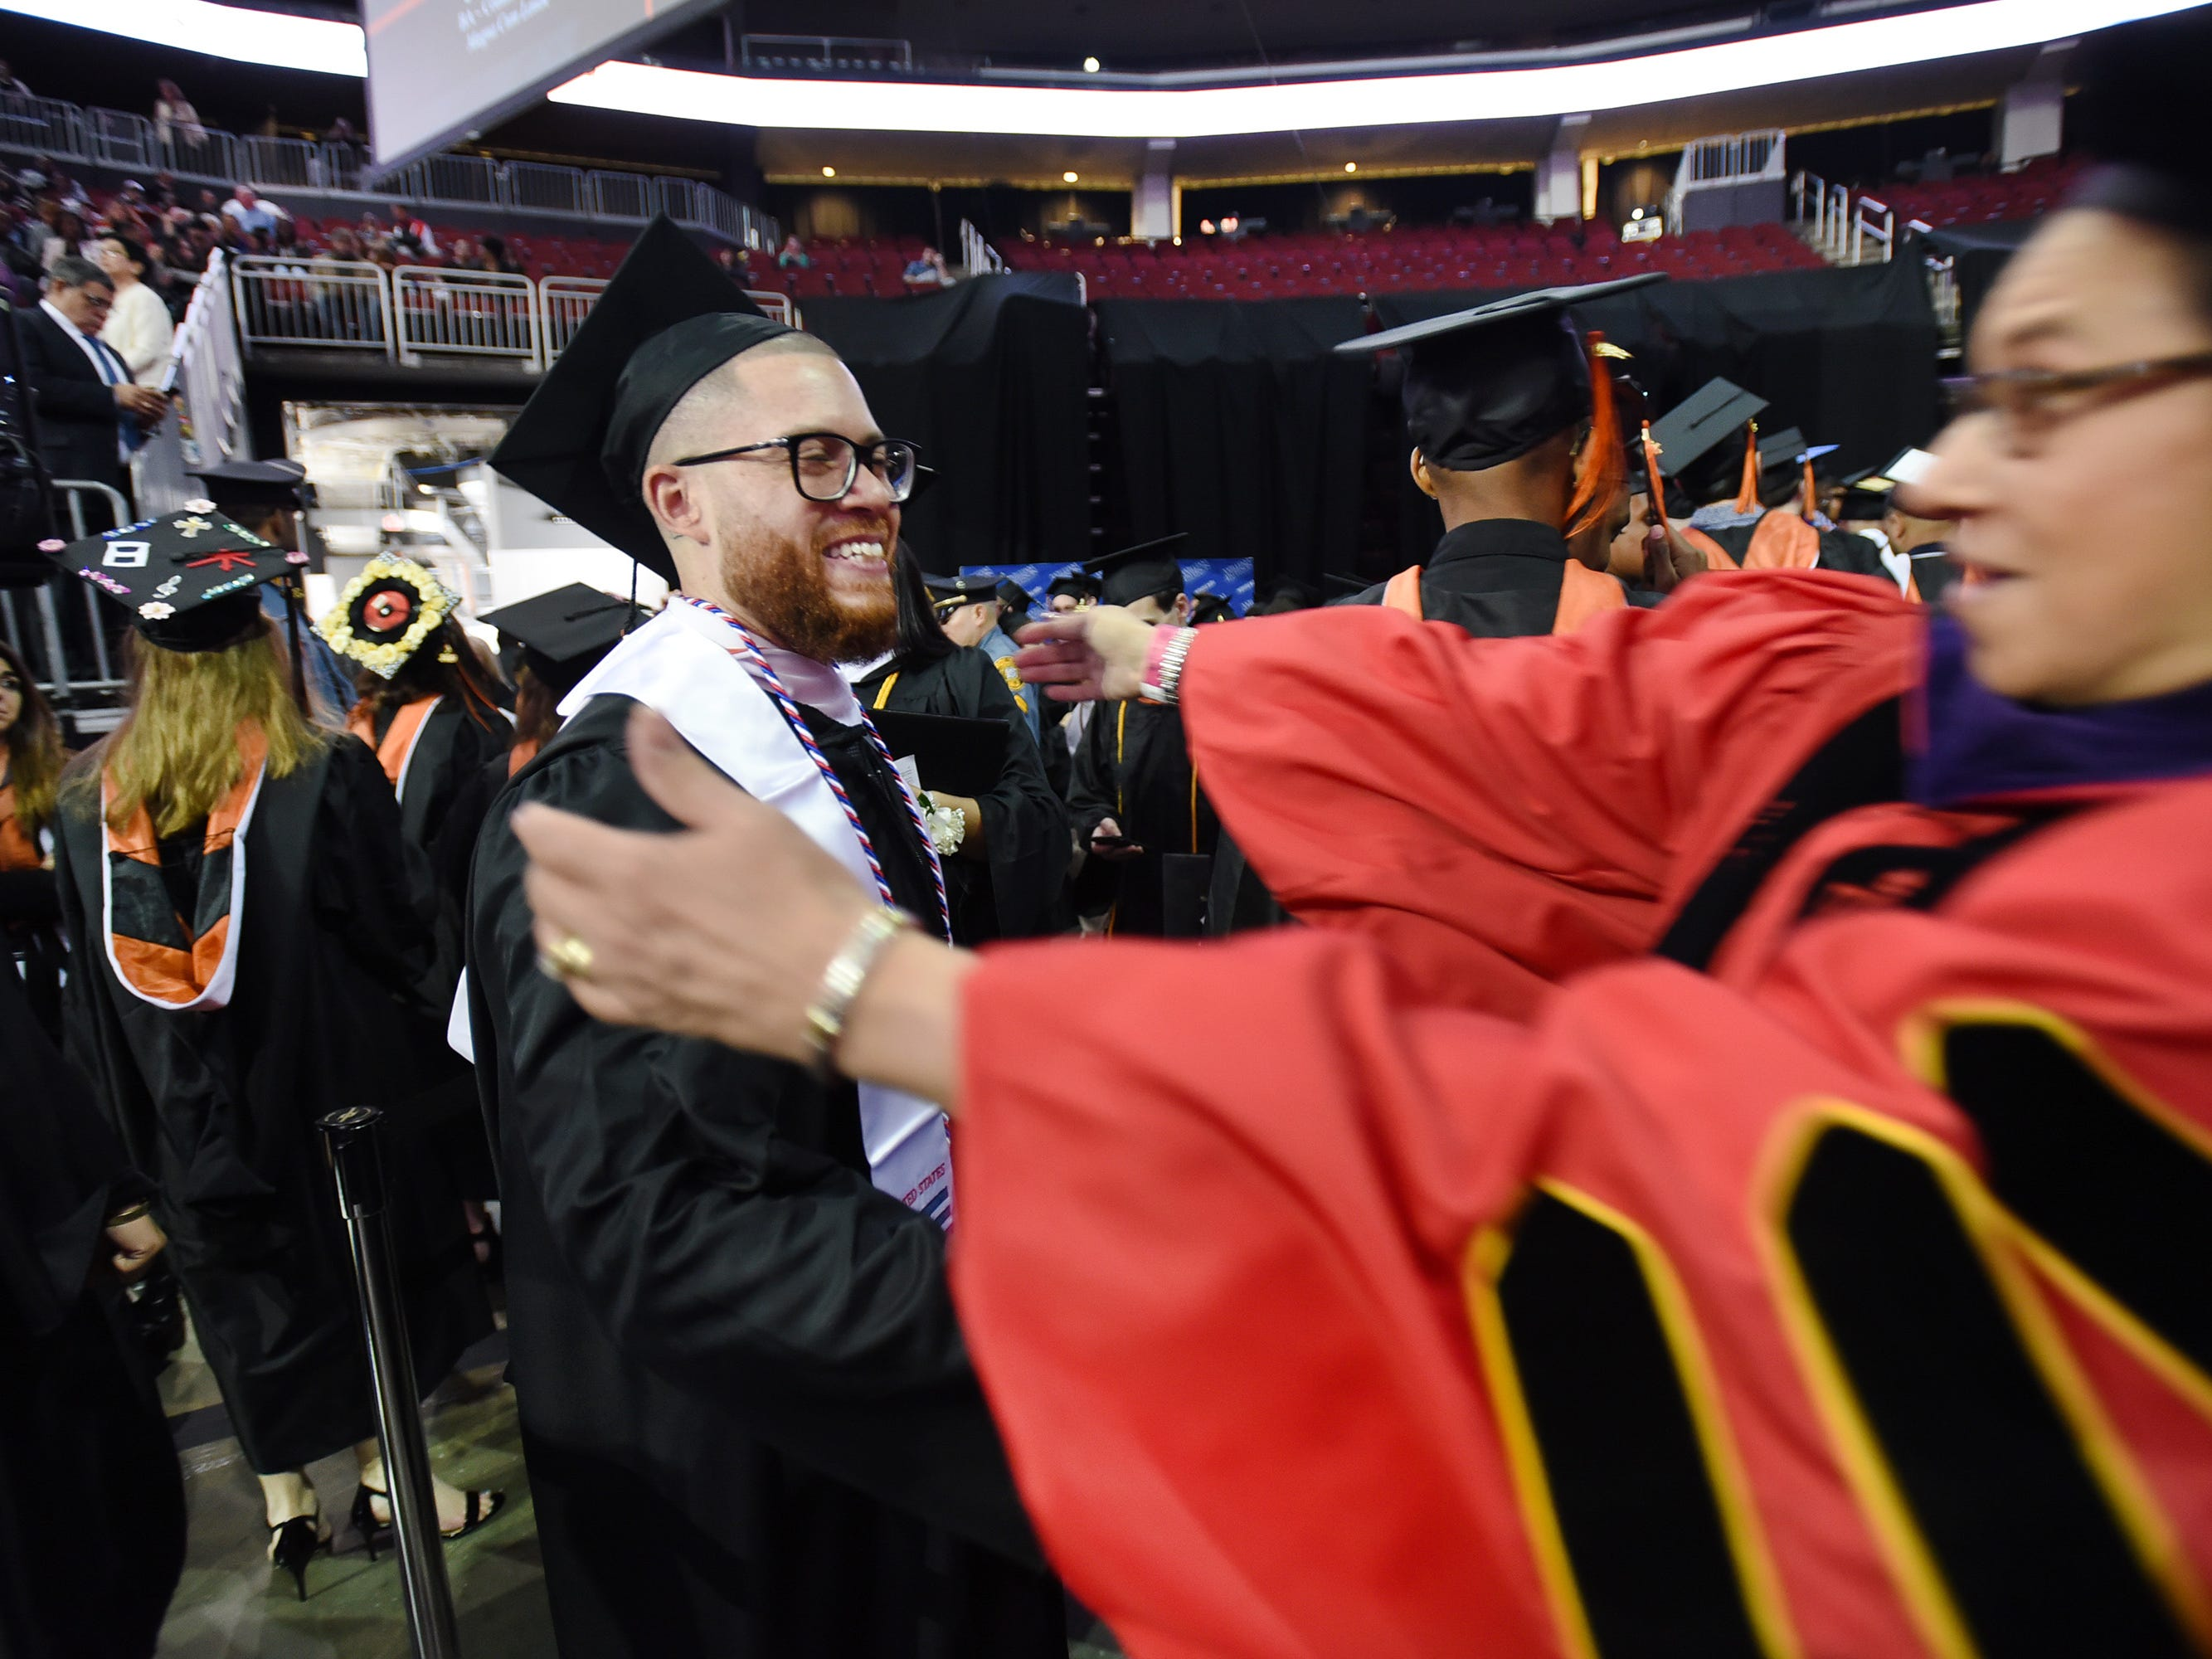 Jacob Martínez, a graduate of William Paterson University, embraces Loretta McLaughlin-Vignier, associate dean of the university's College of the Arts and Communication, at its commencement ceremony on May 15.